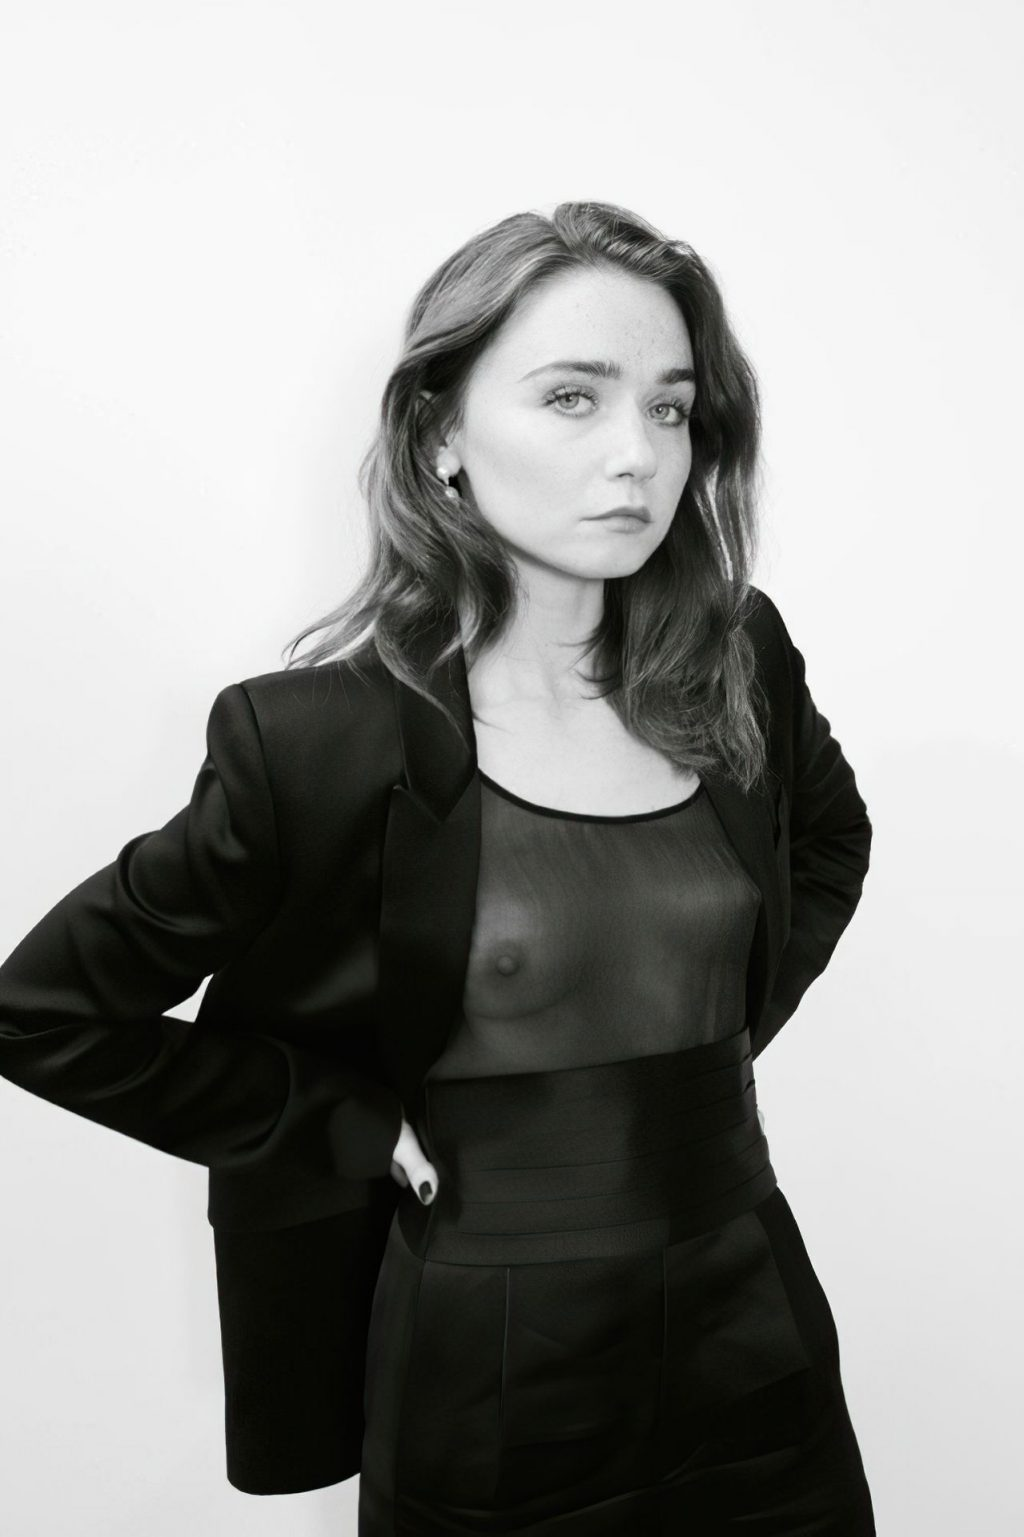 Jessica Barden See Through (1 New Photo)